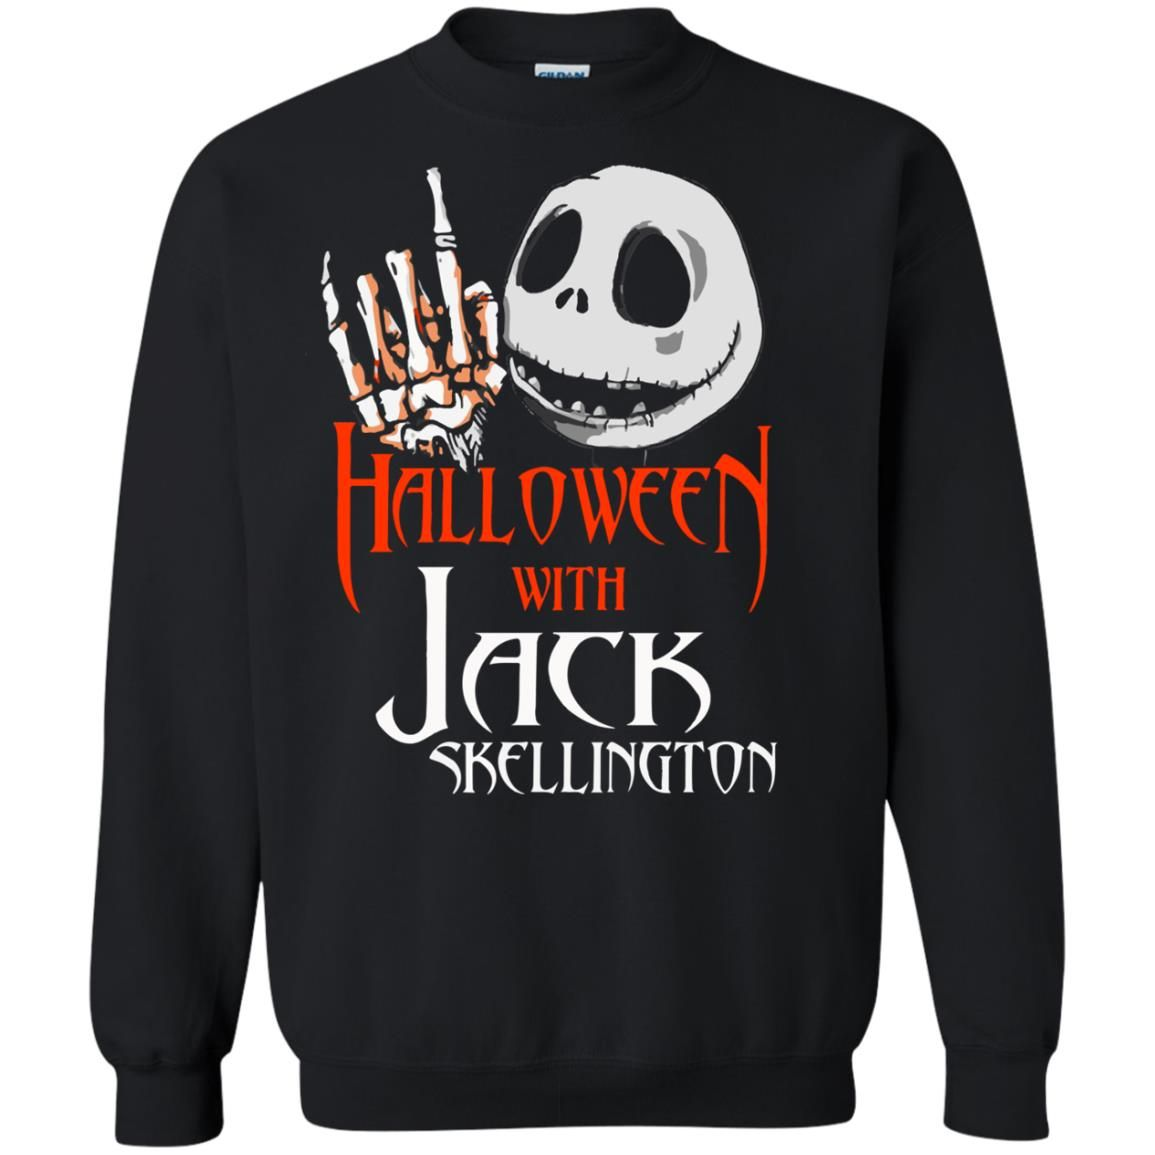 image 1382 - Halloween with Jack Skellington shirt, tank top, sweater